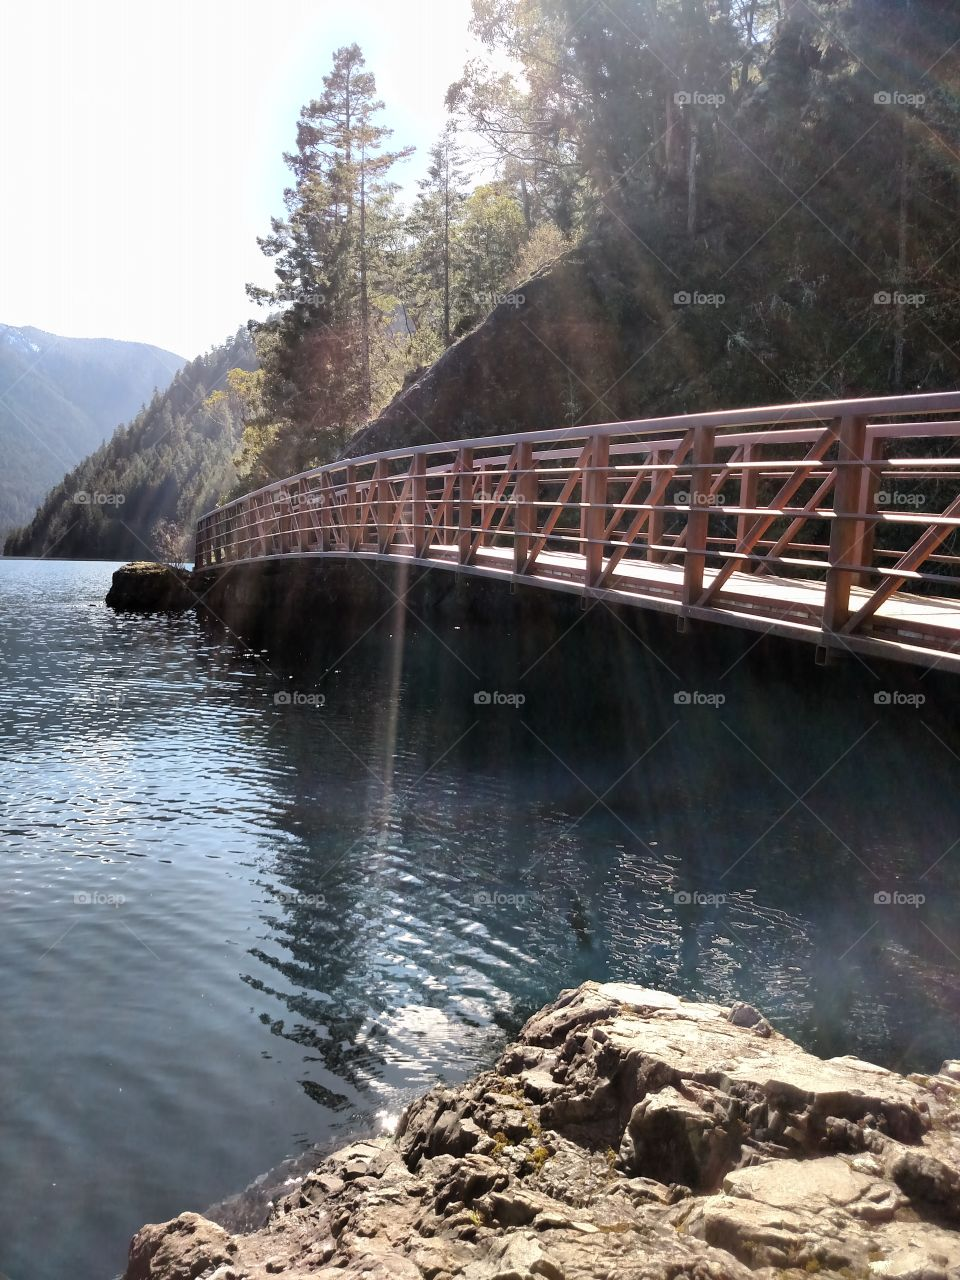 Spruce Railroad Bridge on Lake Crescent in the Pacific Northwest